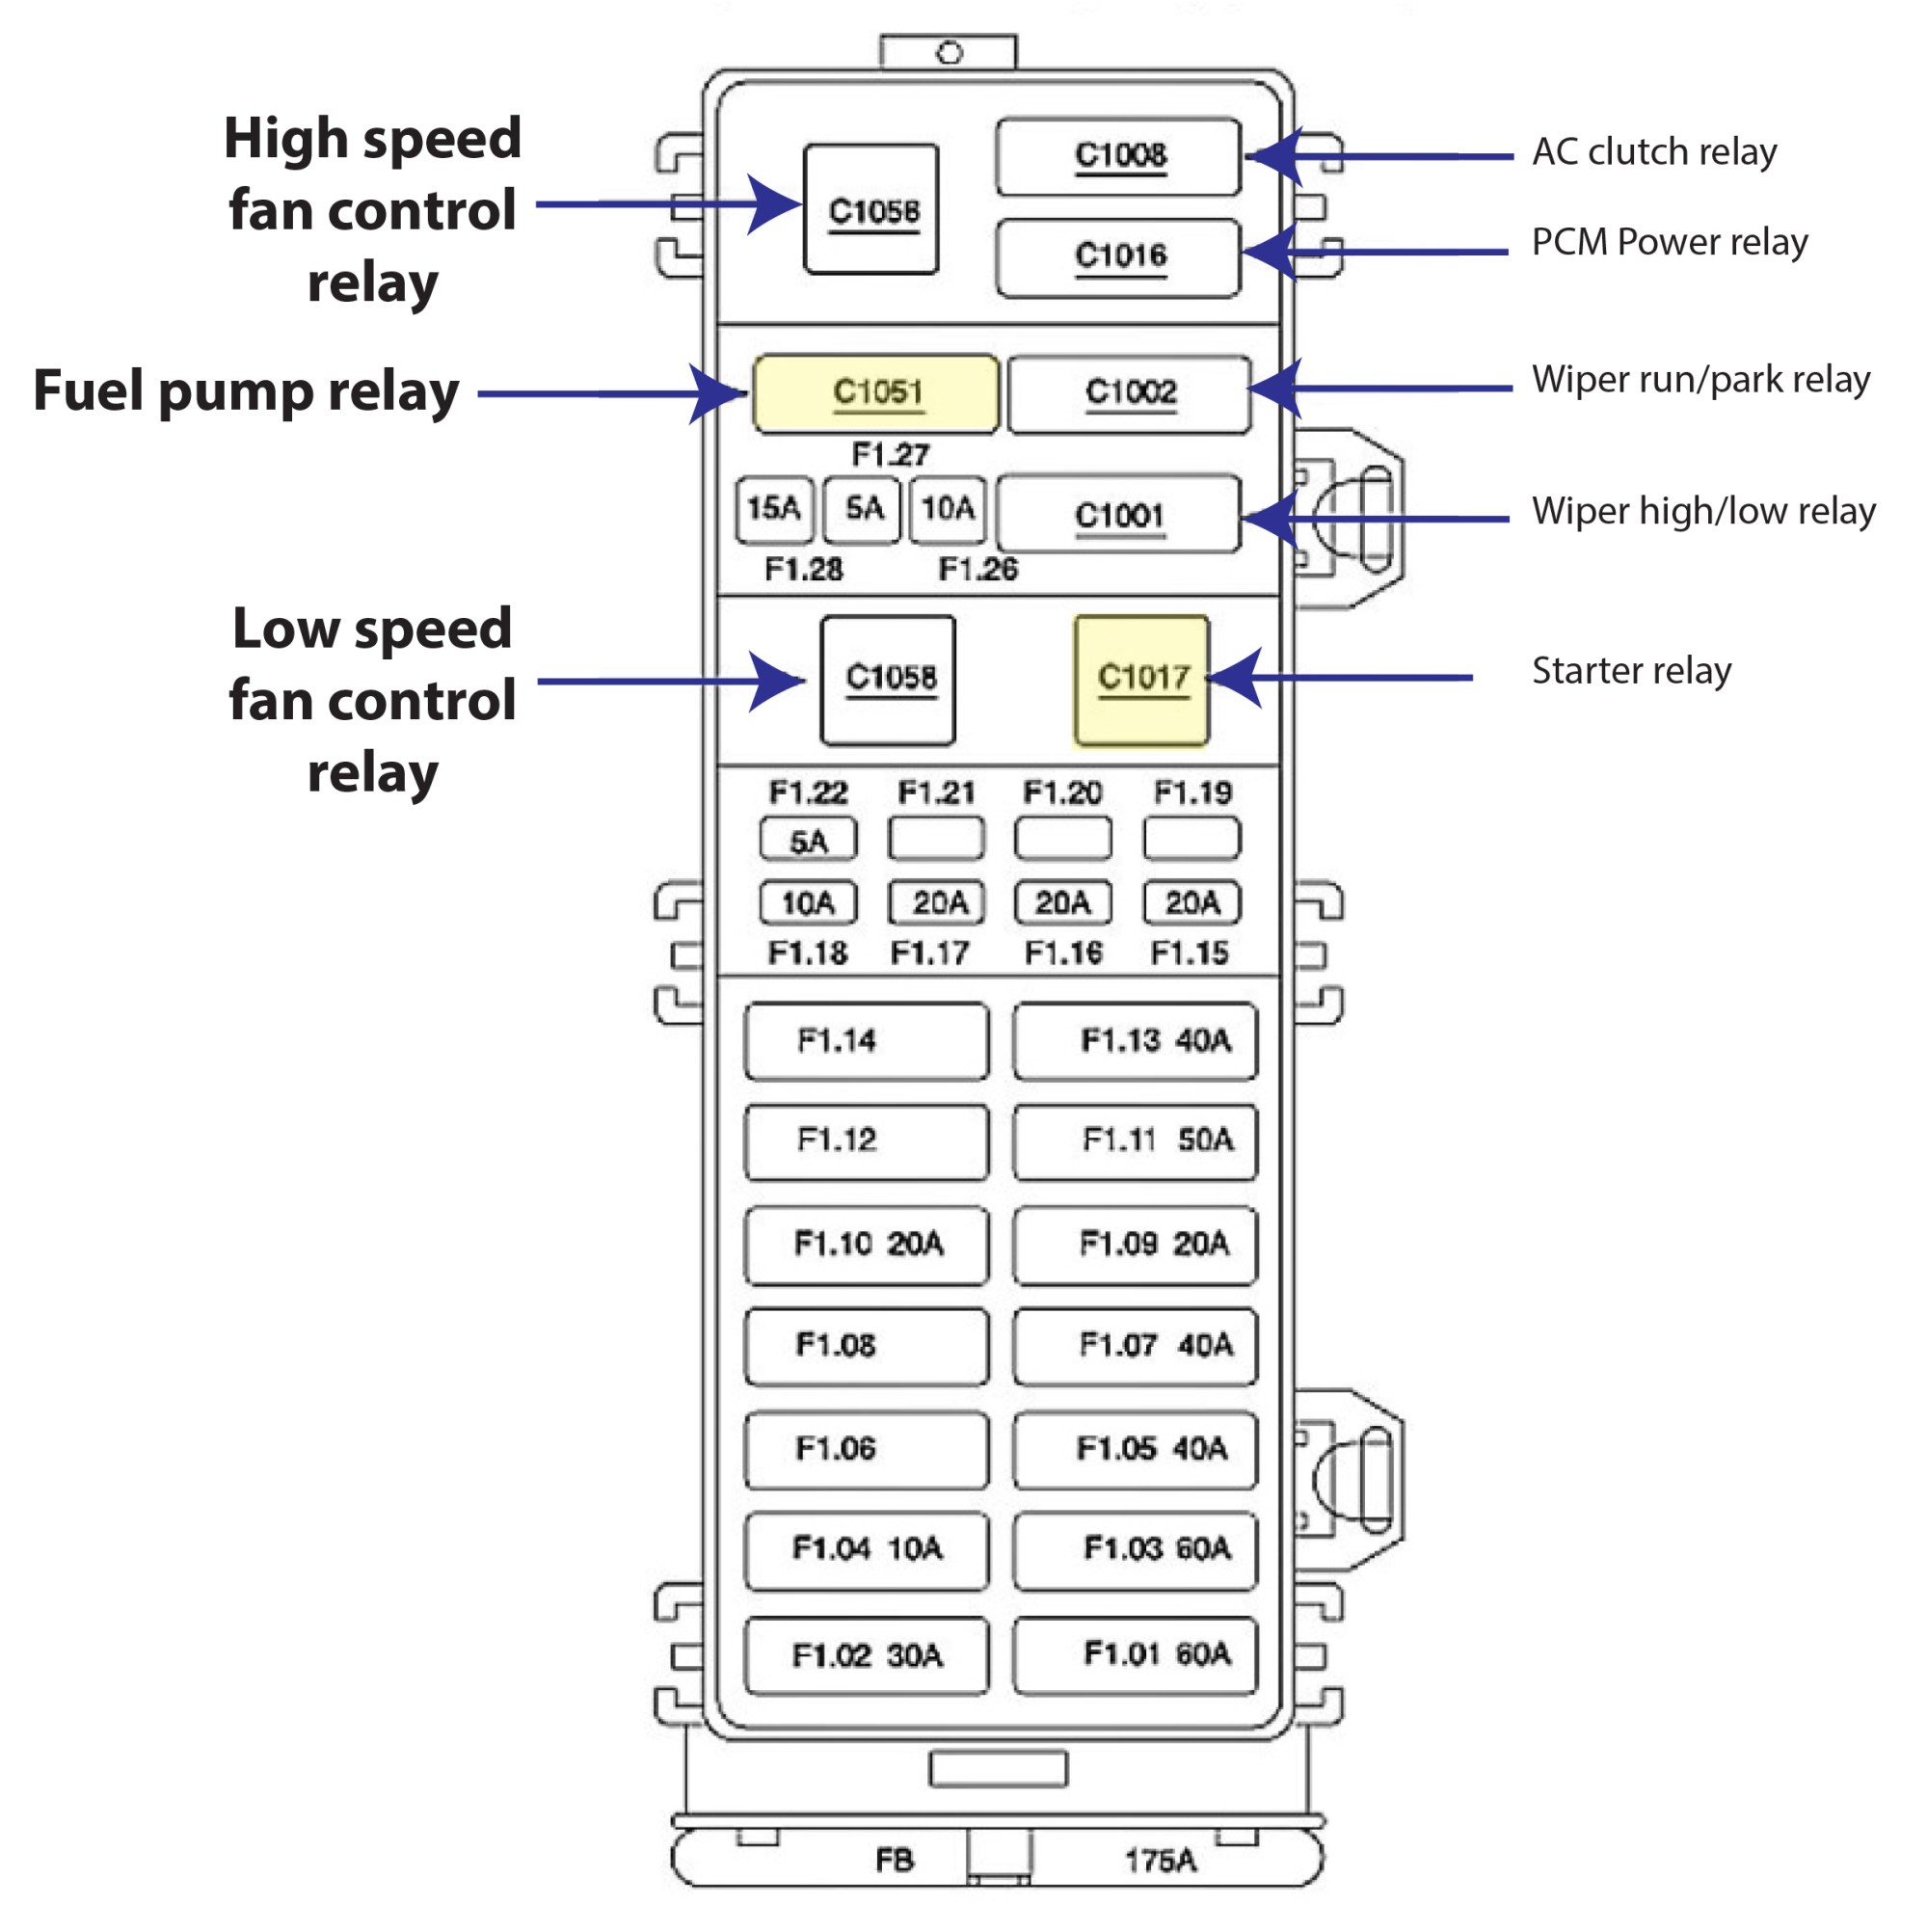 hight resolution of 2002 mercury sable fuse diagram wiring diagram used 2002 mercury sable fuse box diagram location 02